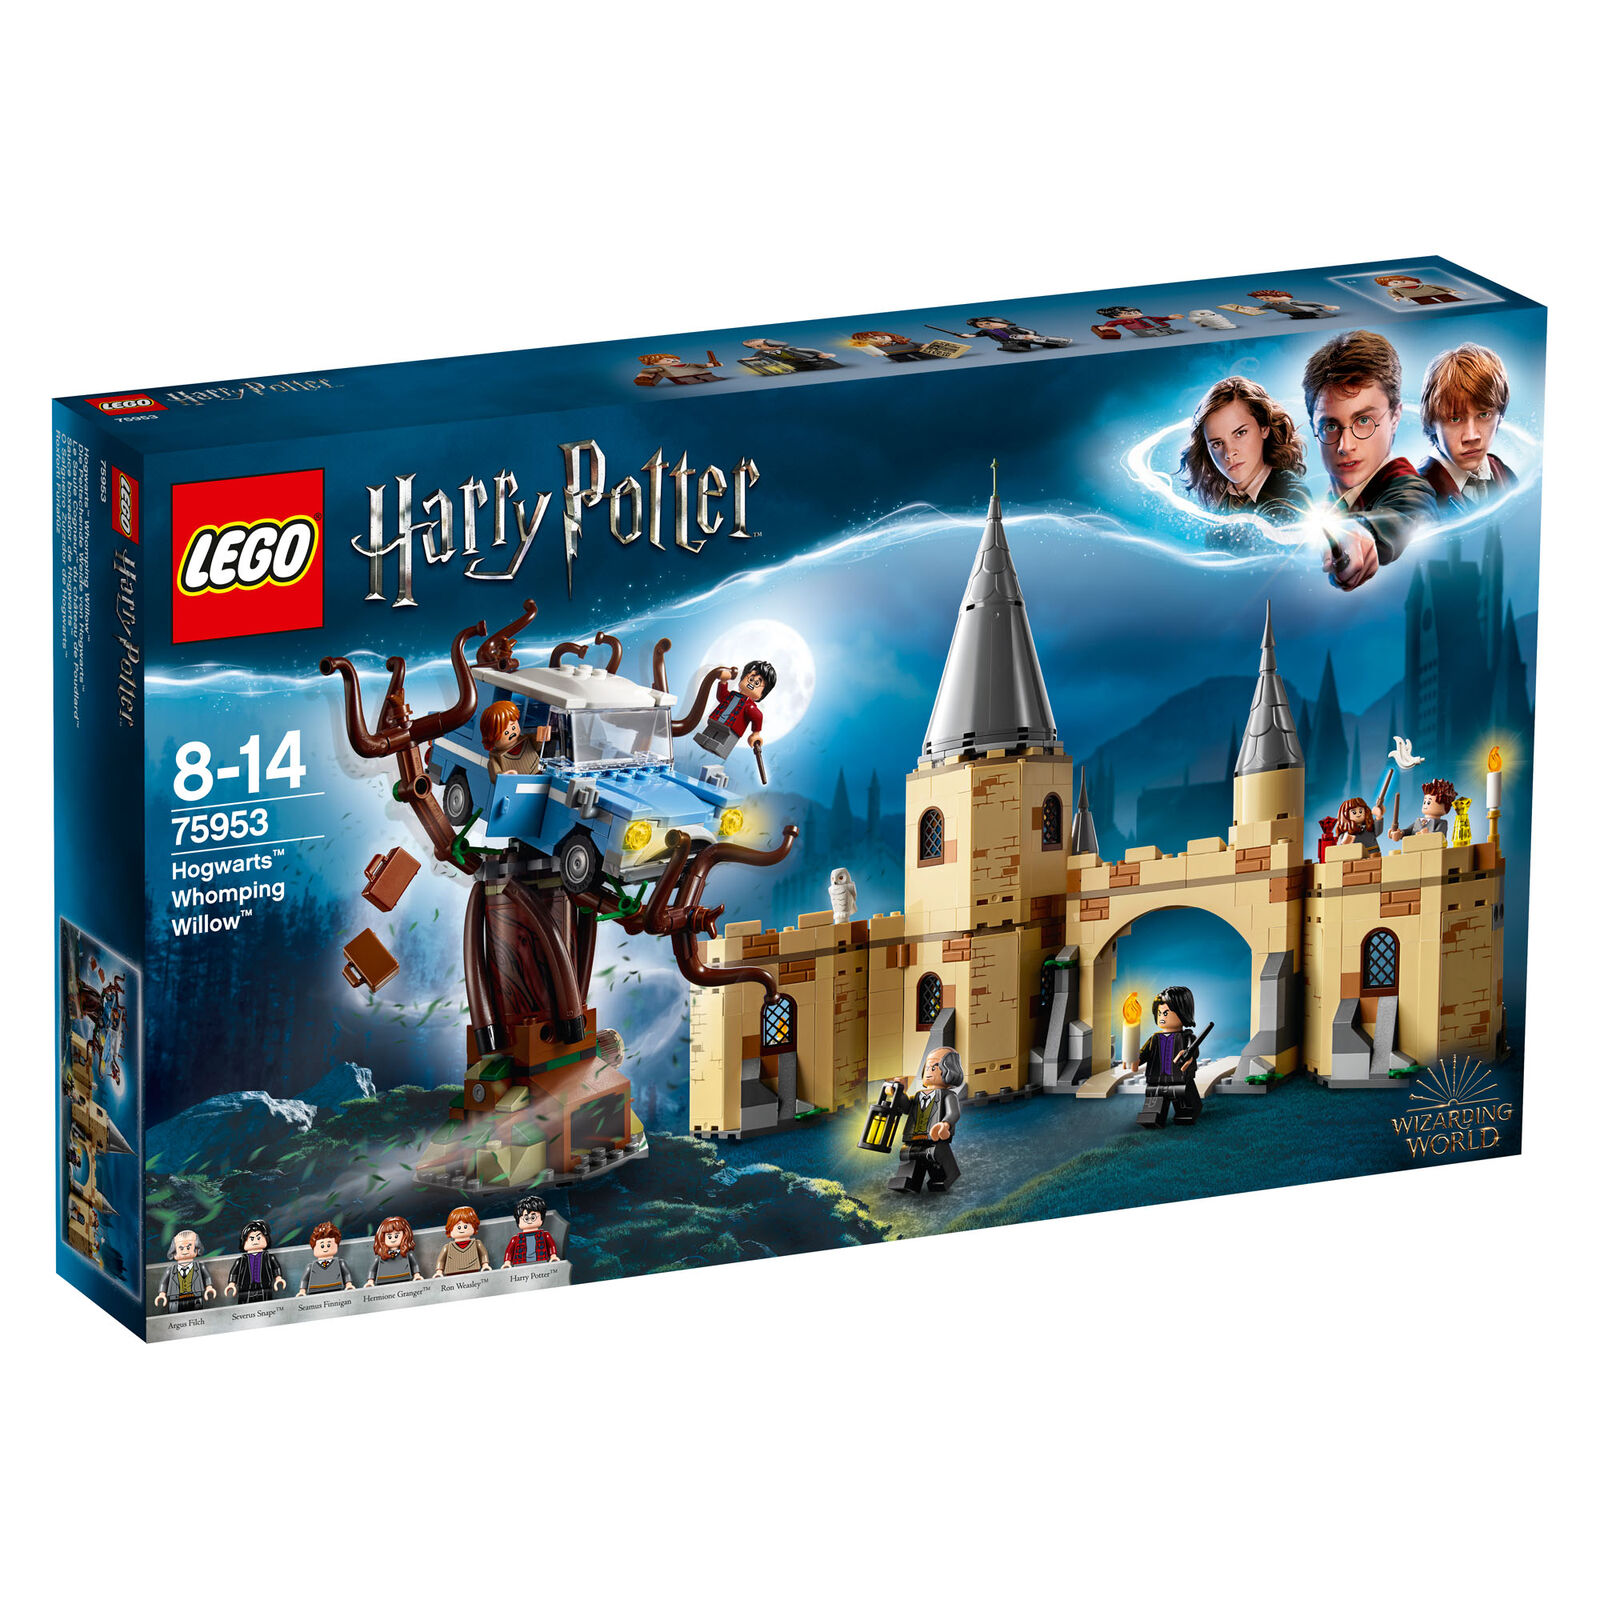 75953 LEGO Harry Potter Hogwarts  Whomping WilFaible Set with 753 Pieces Age 8+  le magasin